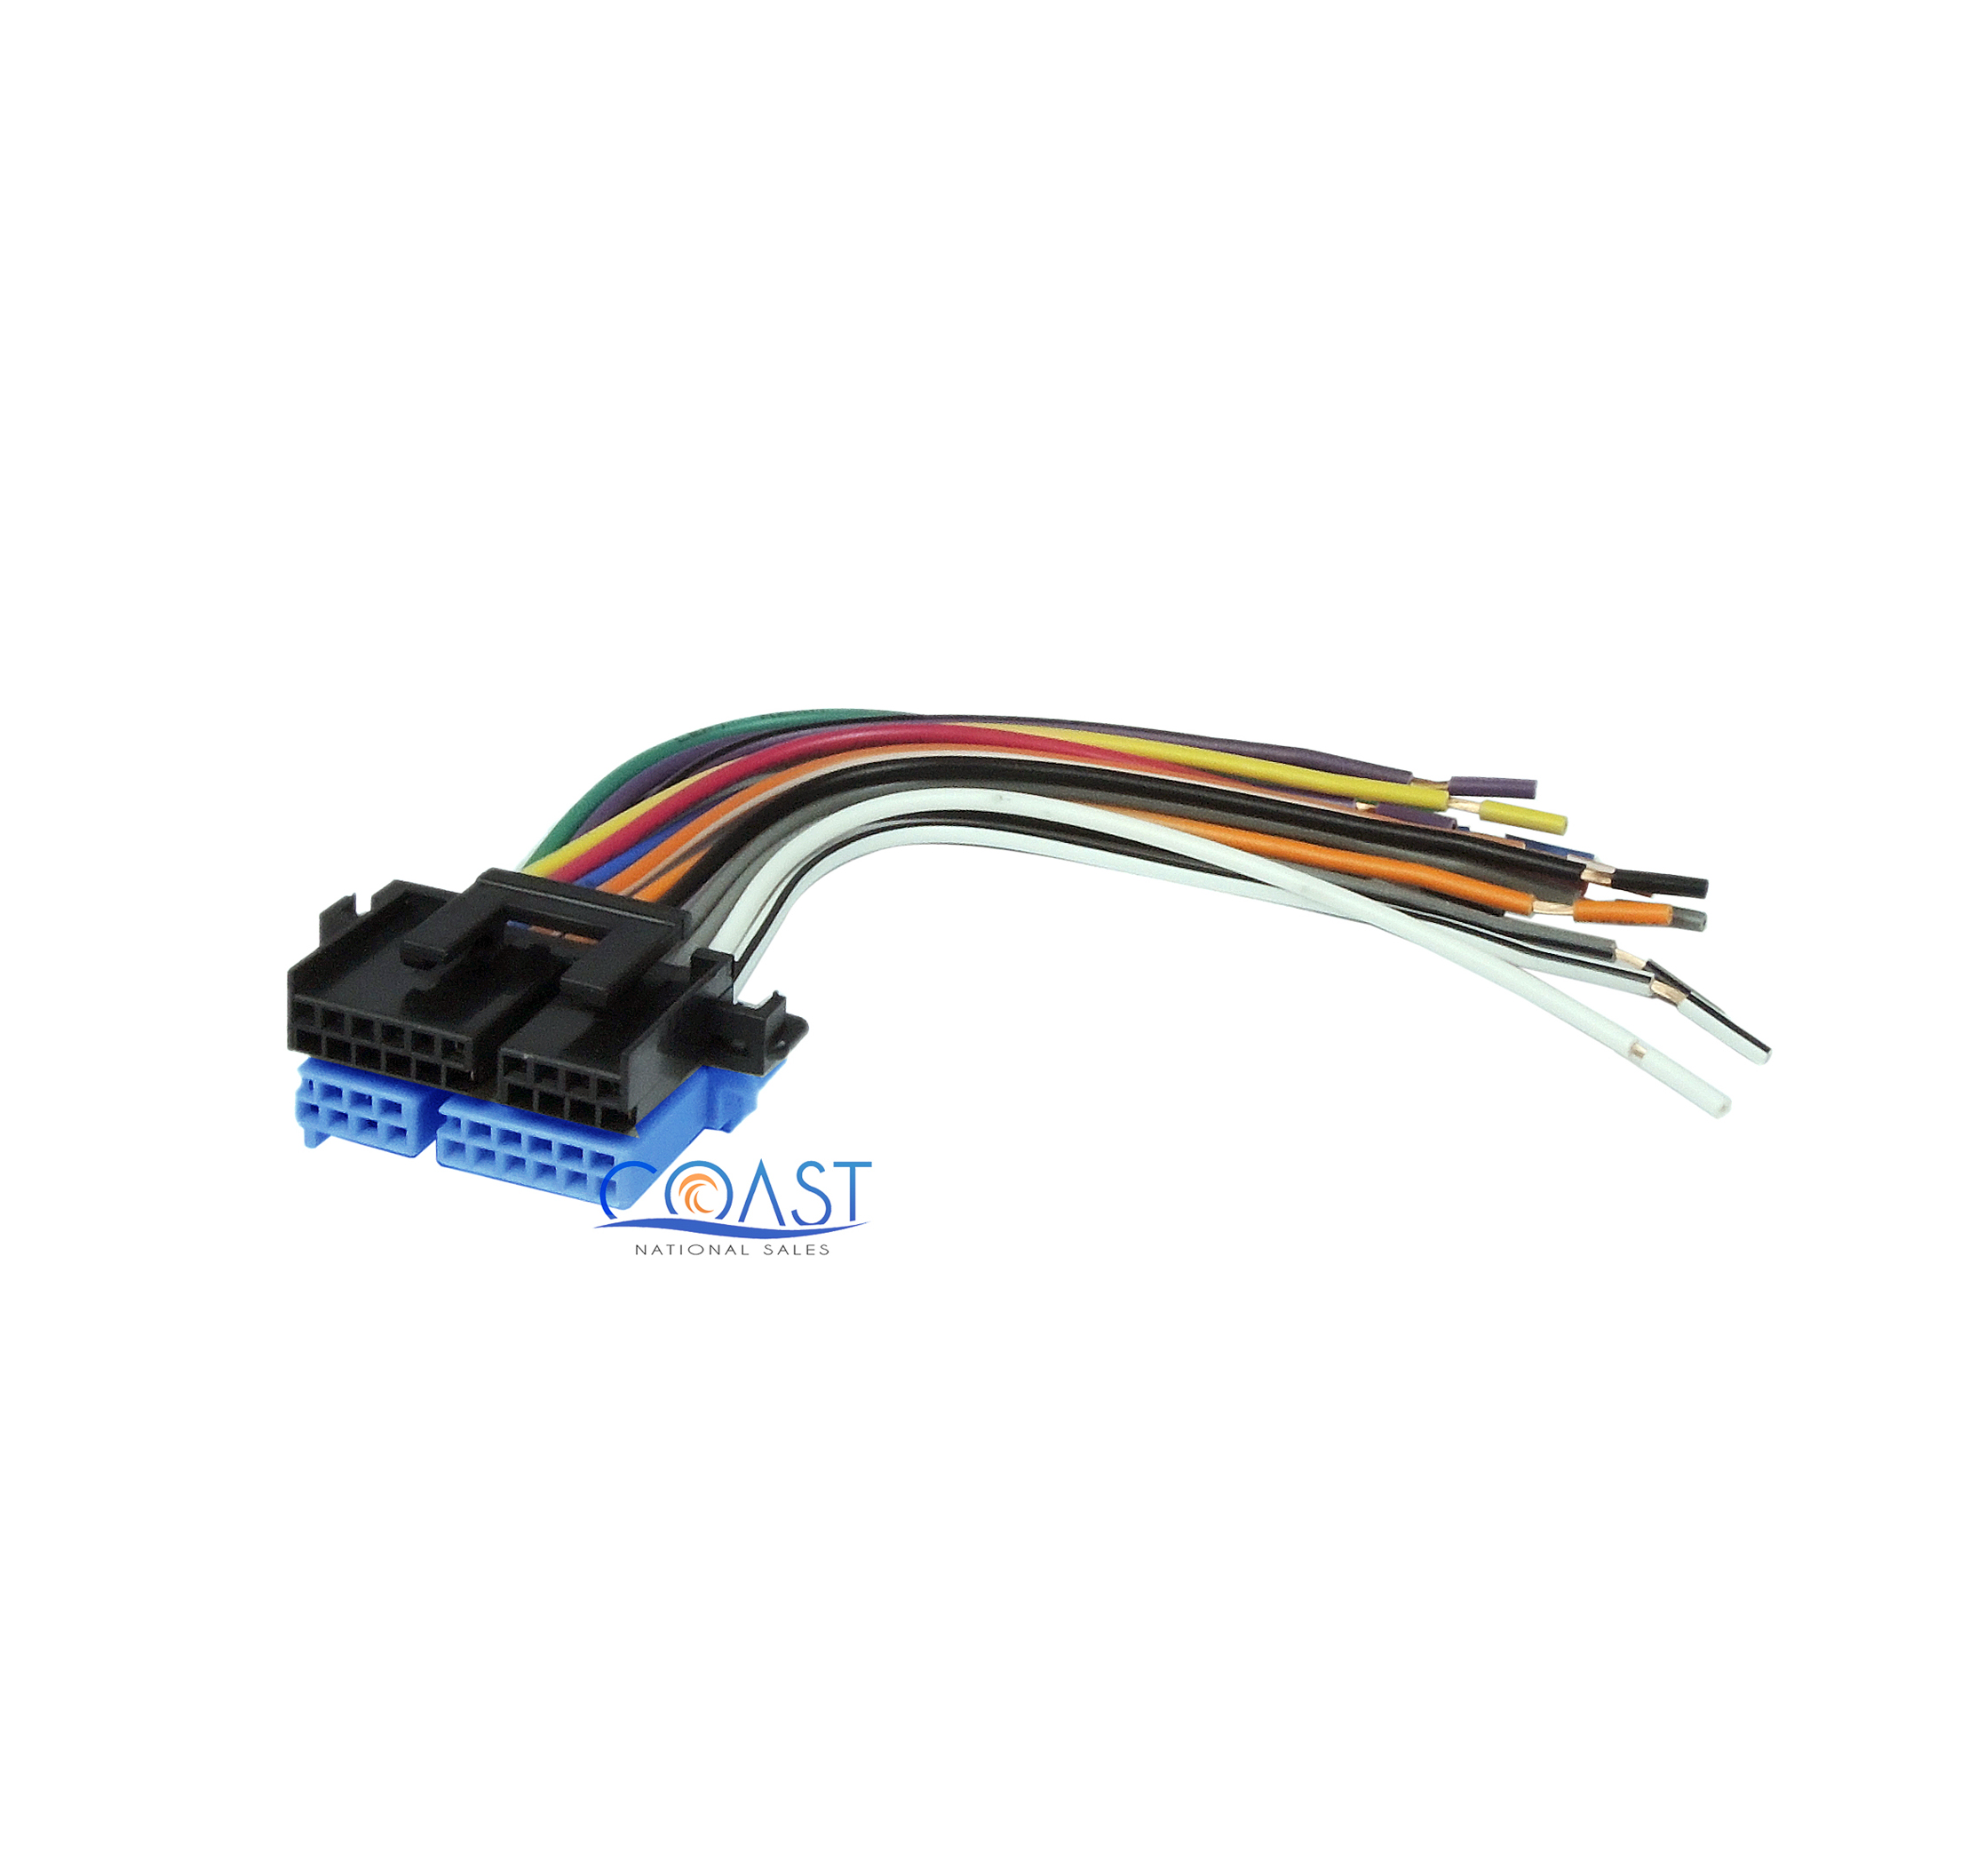 2006 Chevy Silverado Aftermarket Stereo Wiring Harness 54 2500 Radio Gm 1343m Diagram For 2004 The